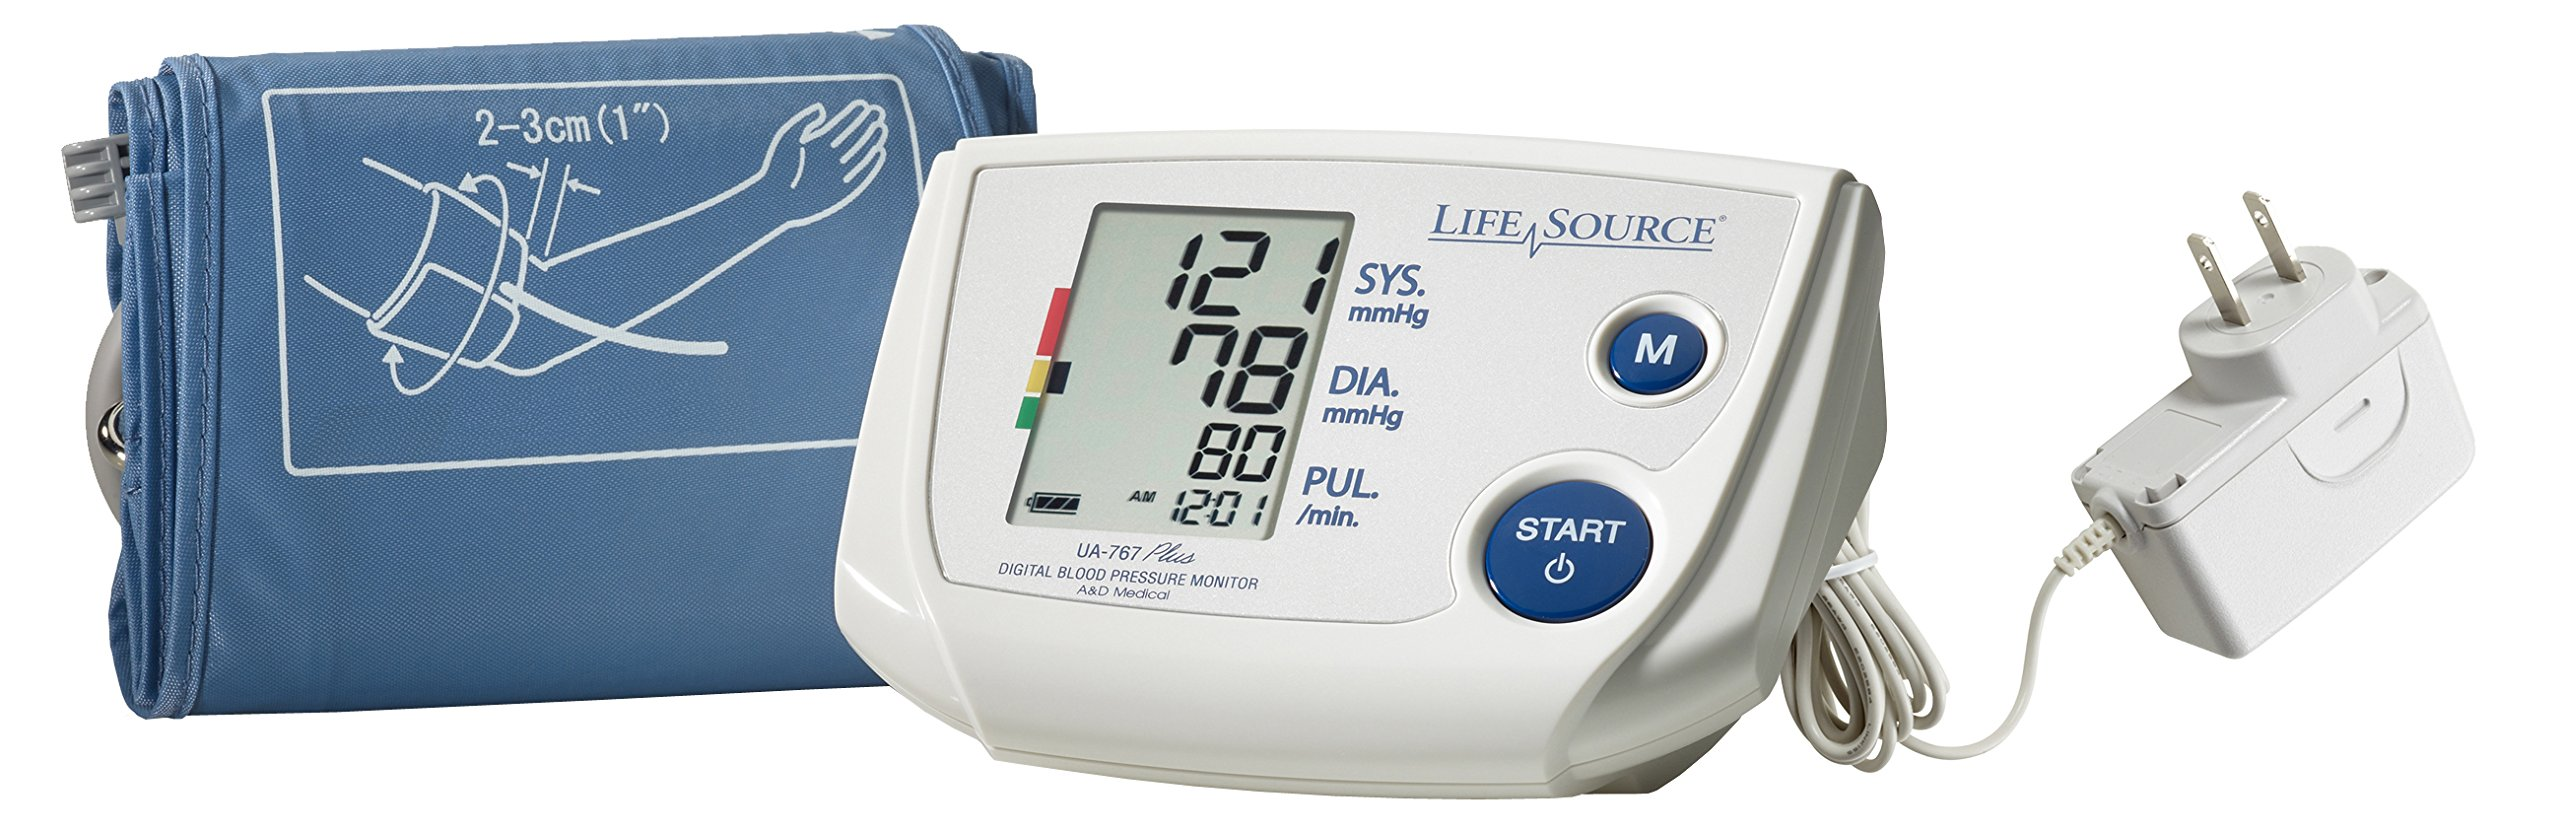 LifeSource Upper Arm Blood Pressure Monitor with Small Cuff for Thin Arms (UA-767PSAC) by LifeSource